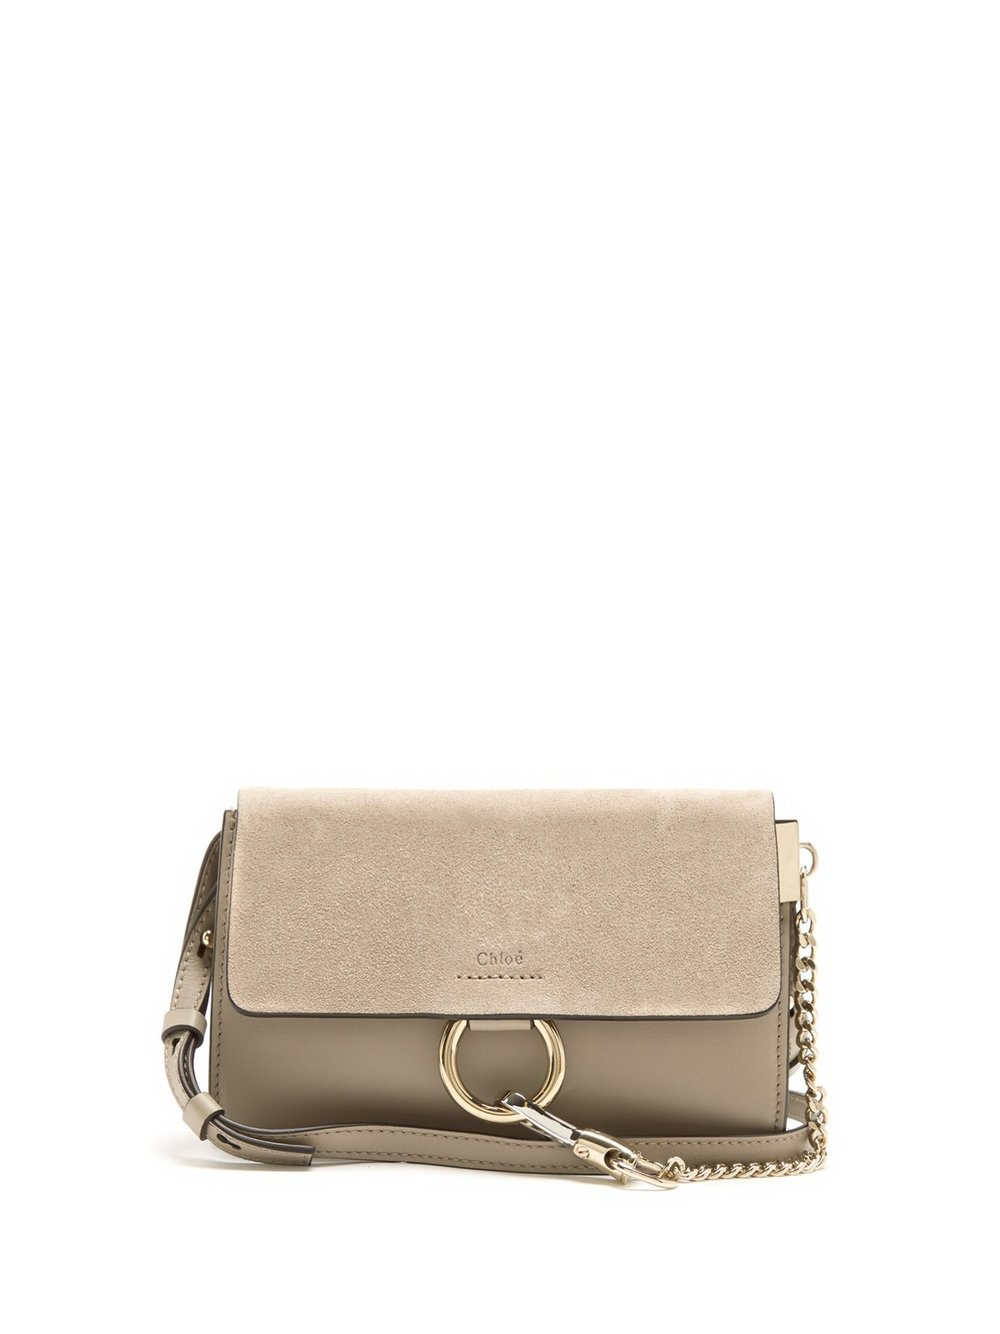 2. Leather and suede bag, £525 by Chloe at Matches